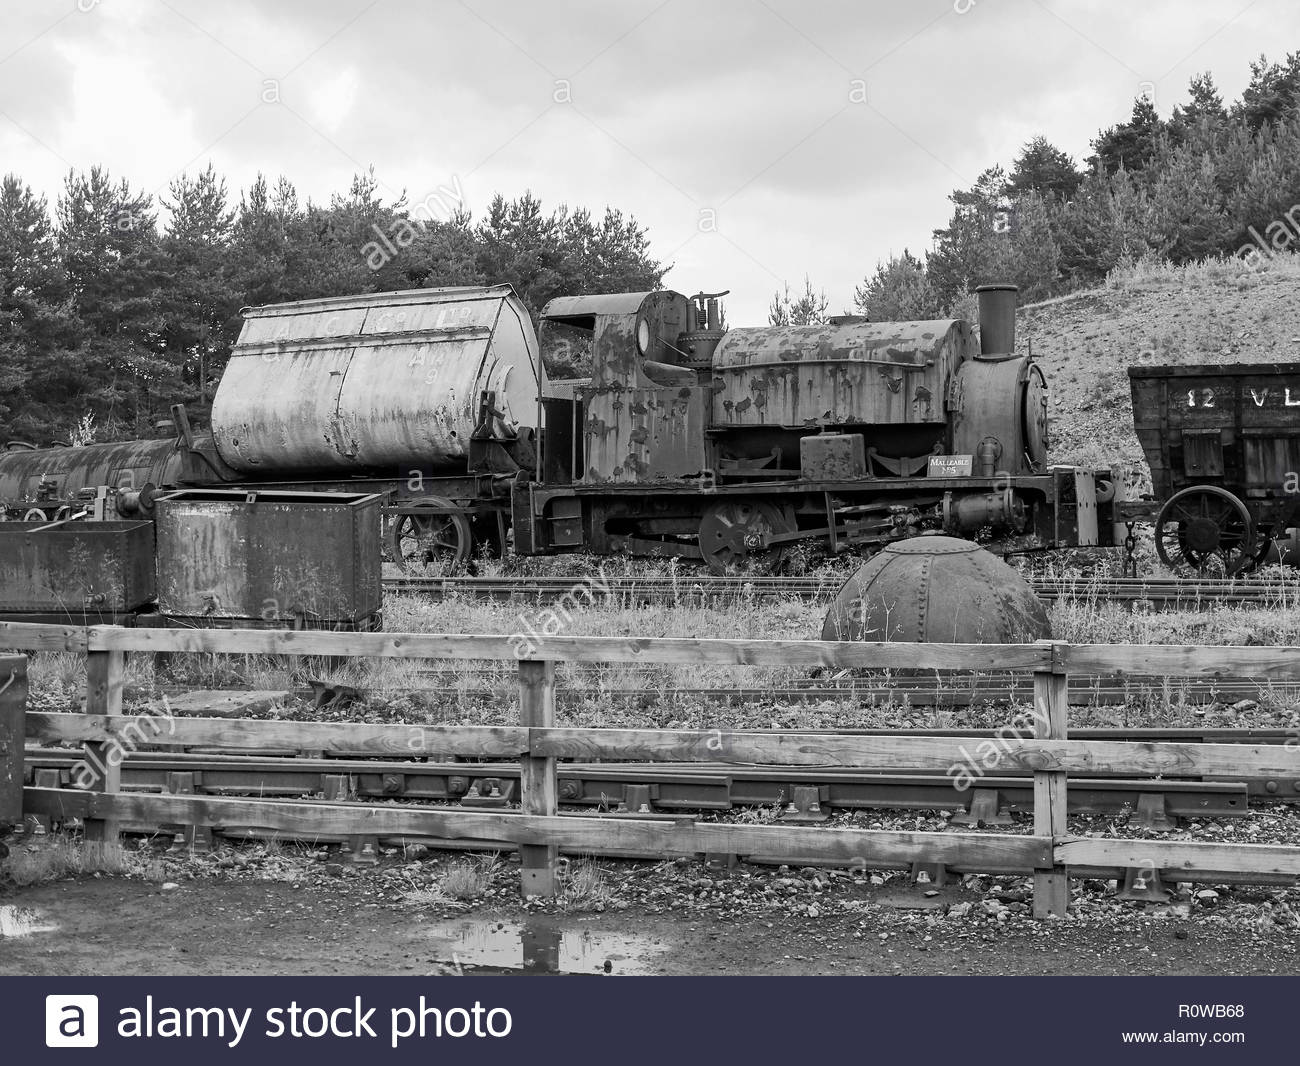 A rusting old steam engine with trucks in beamish open air museum in county durham england uk - Stock Image